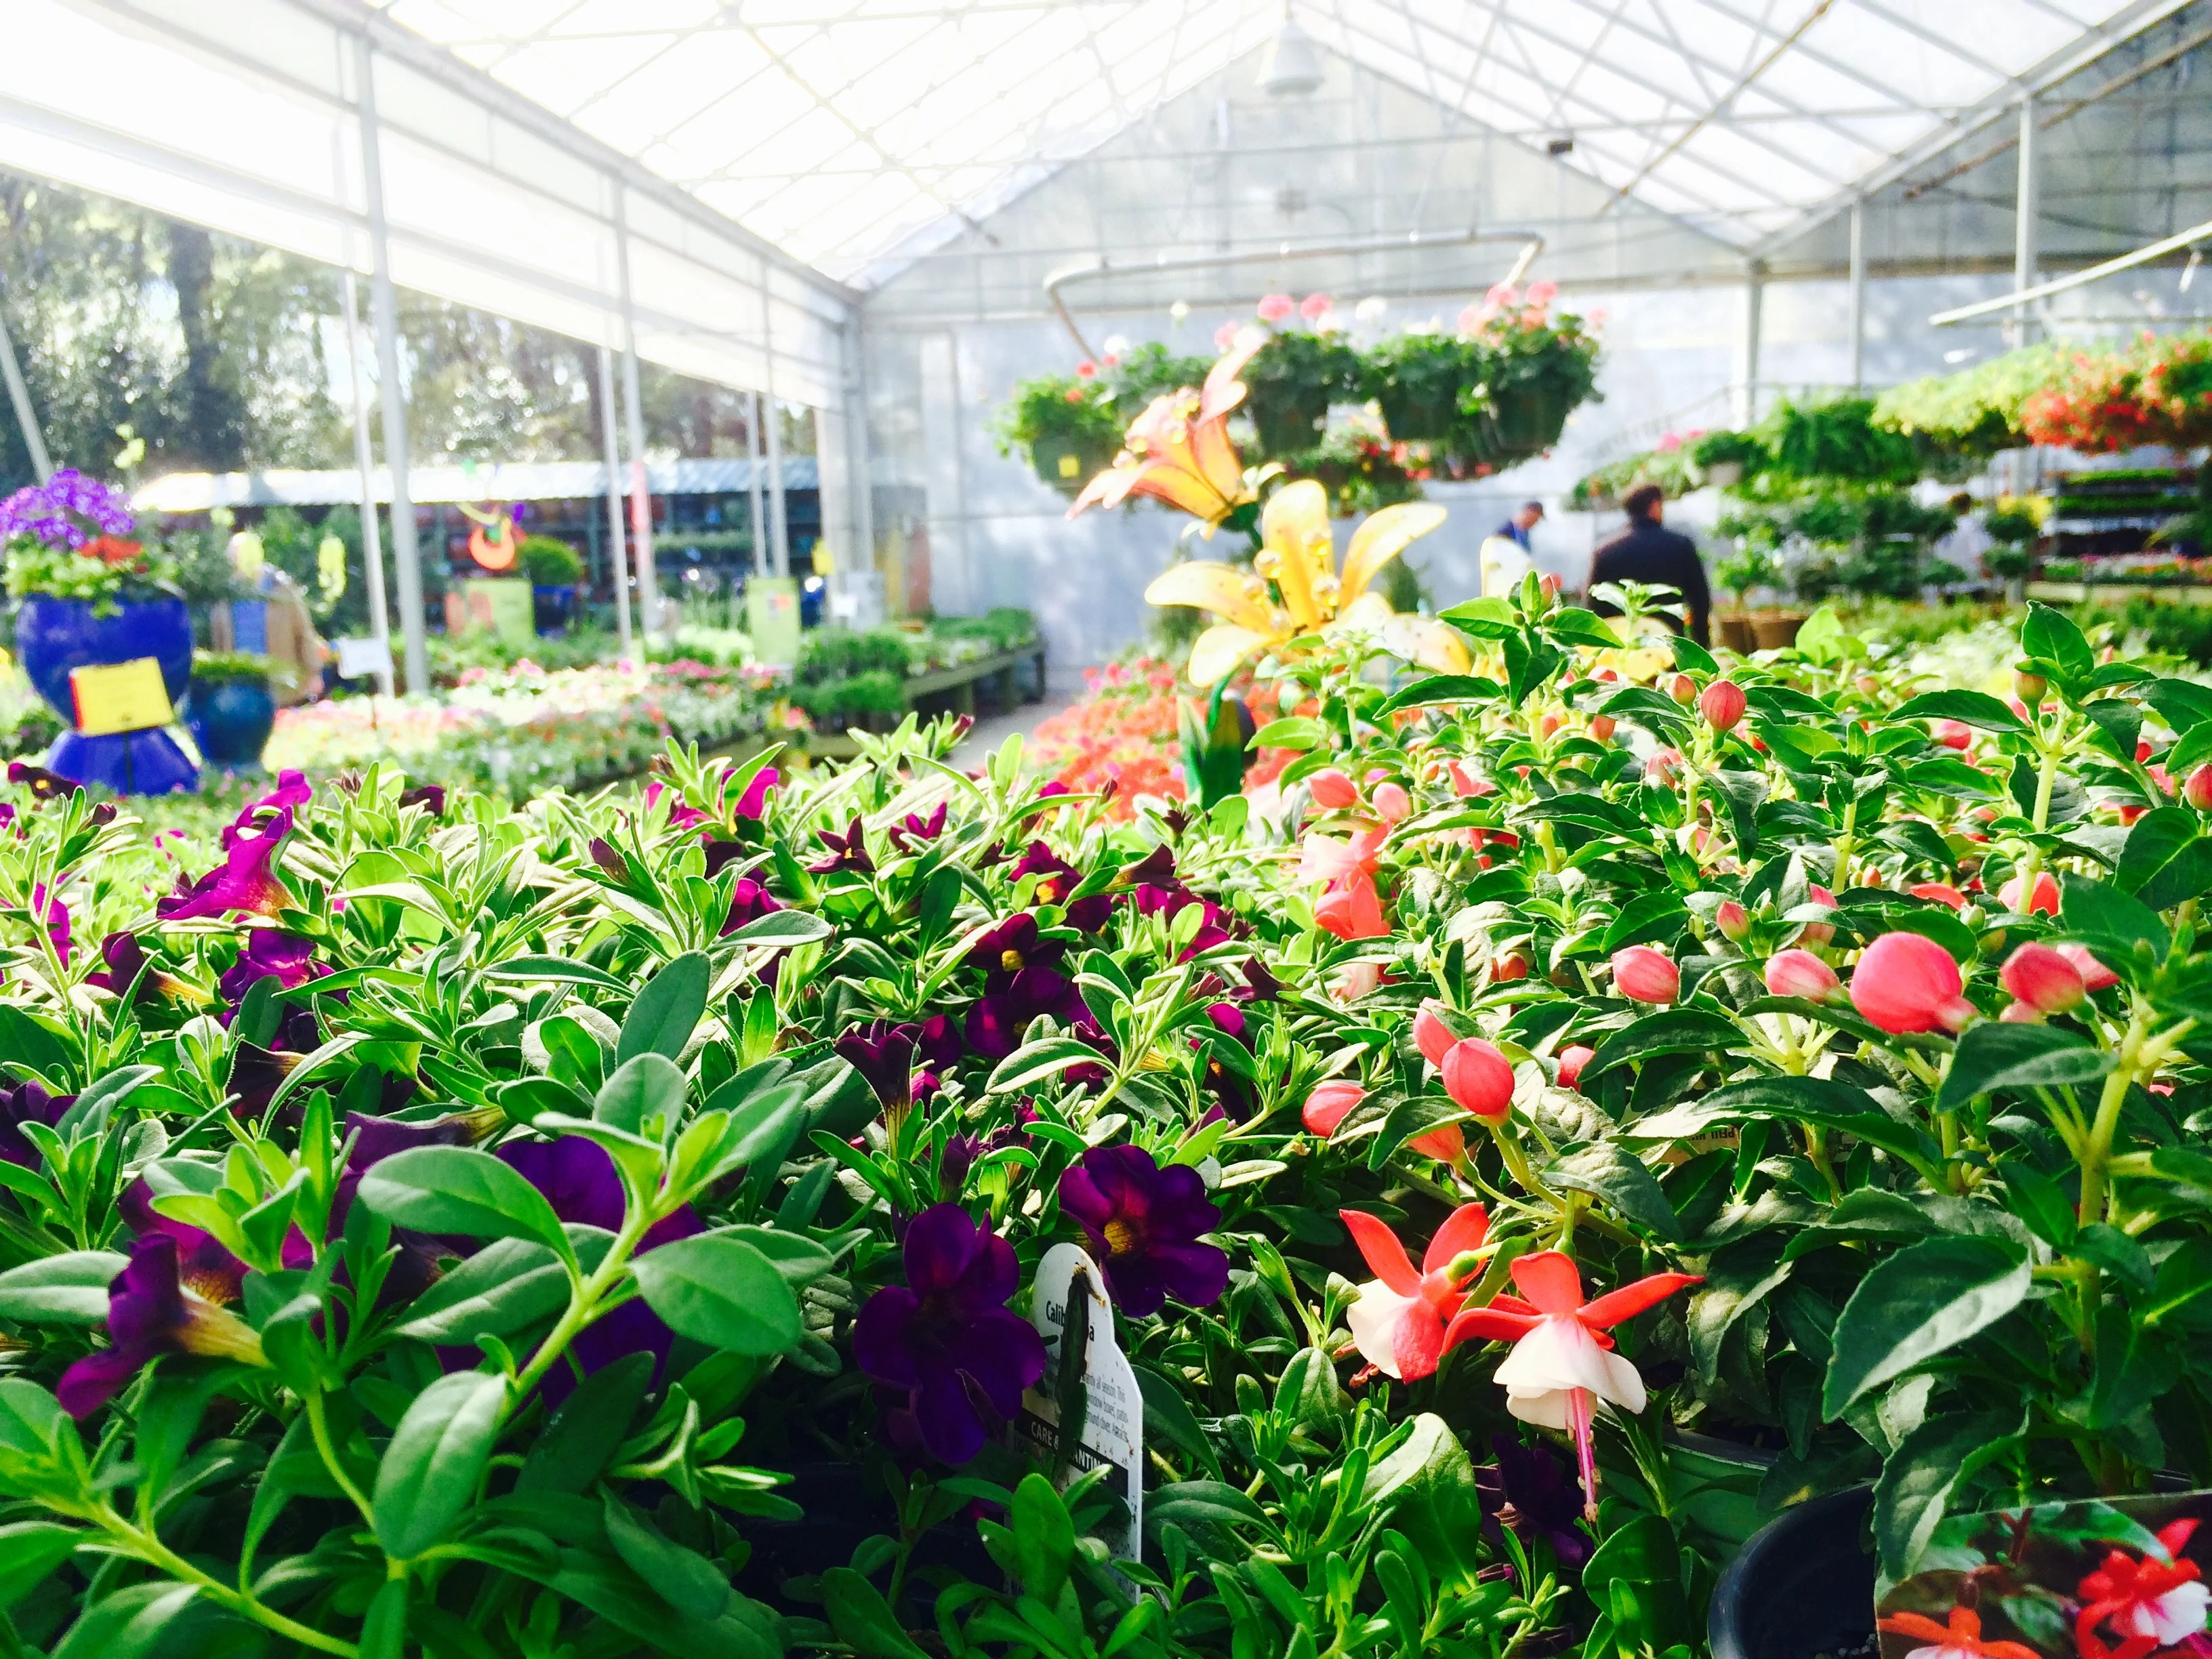 pike nurseries is opening a new